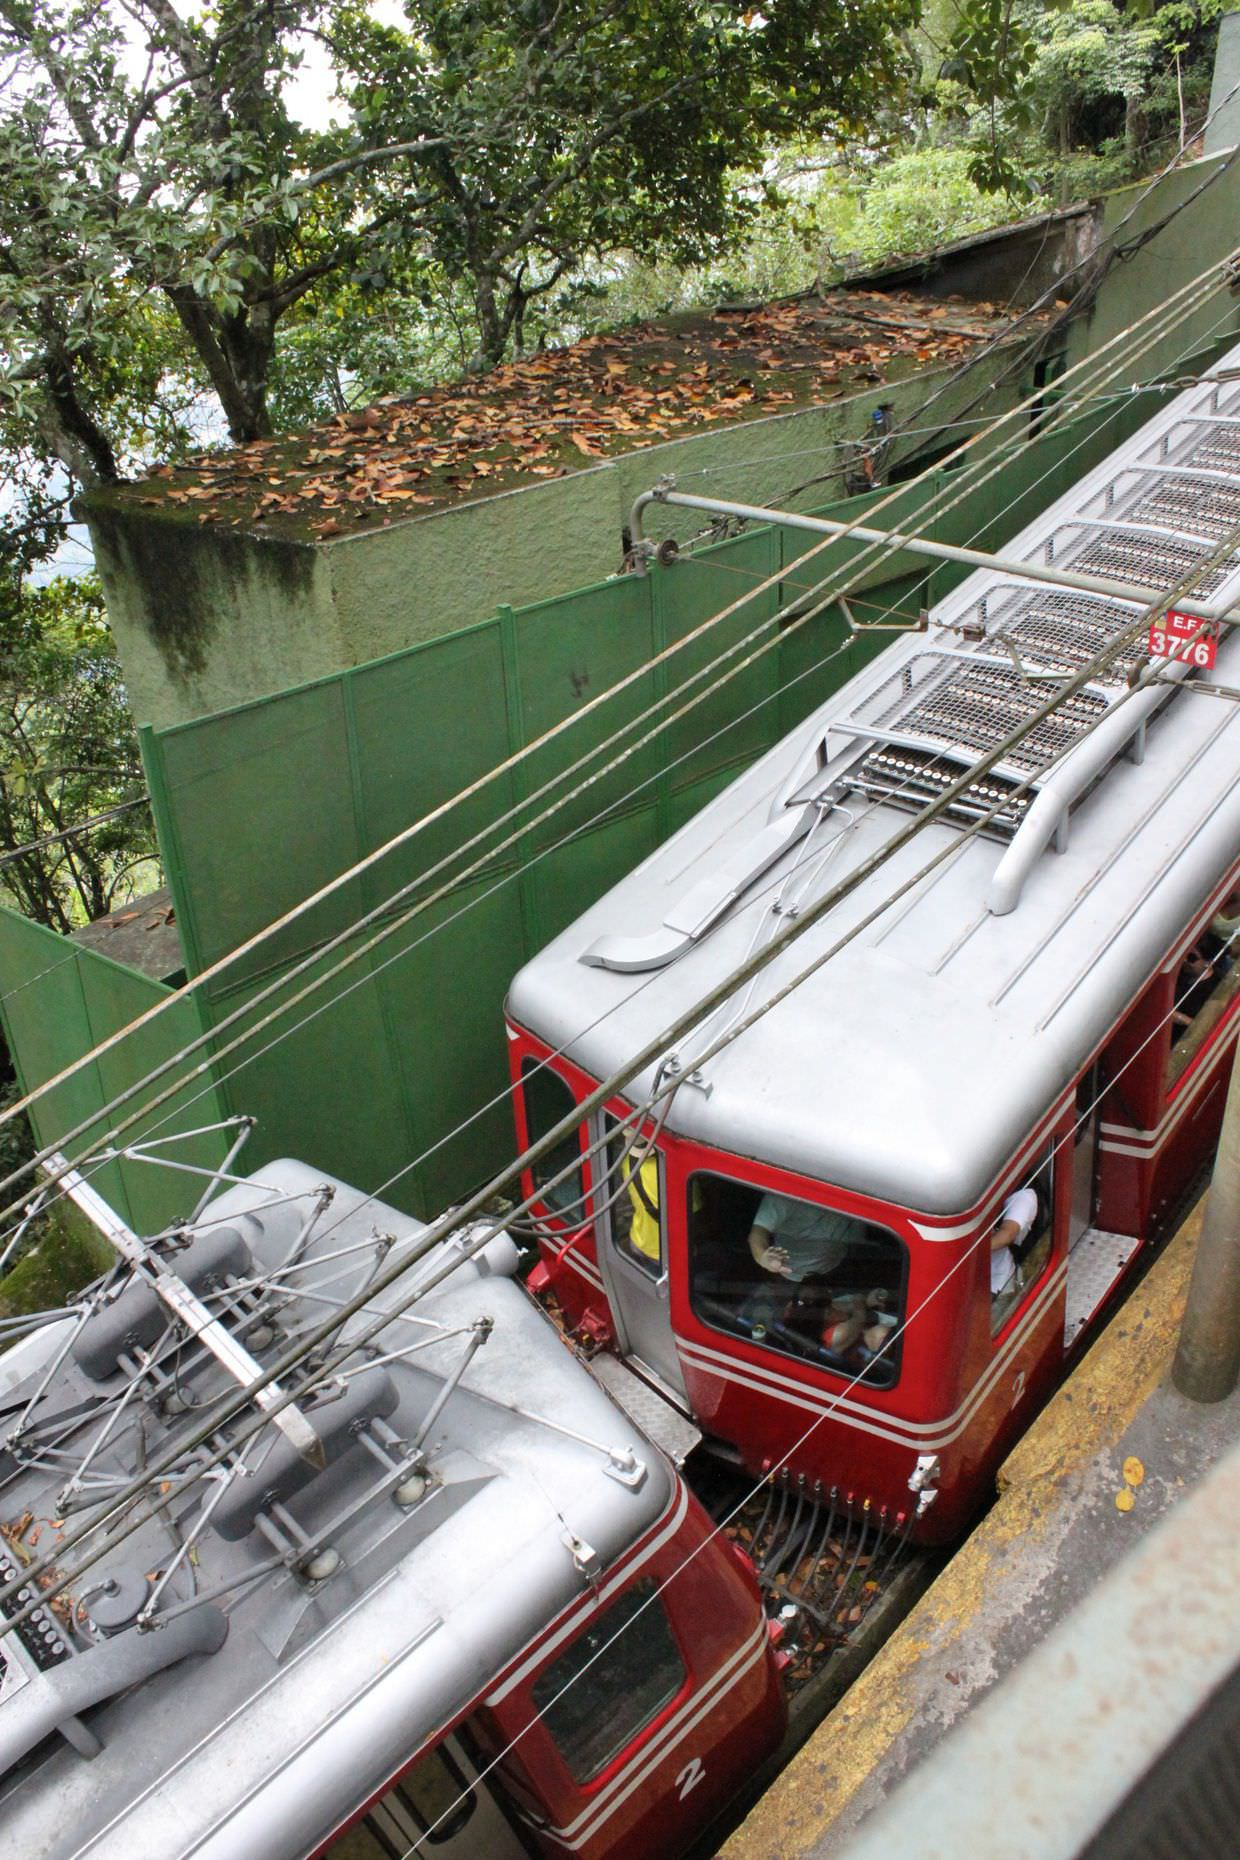 Cog trains up to Christ the Redeemer